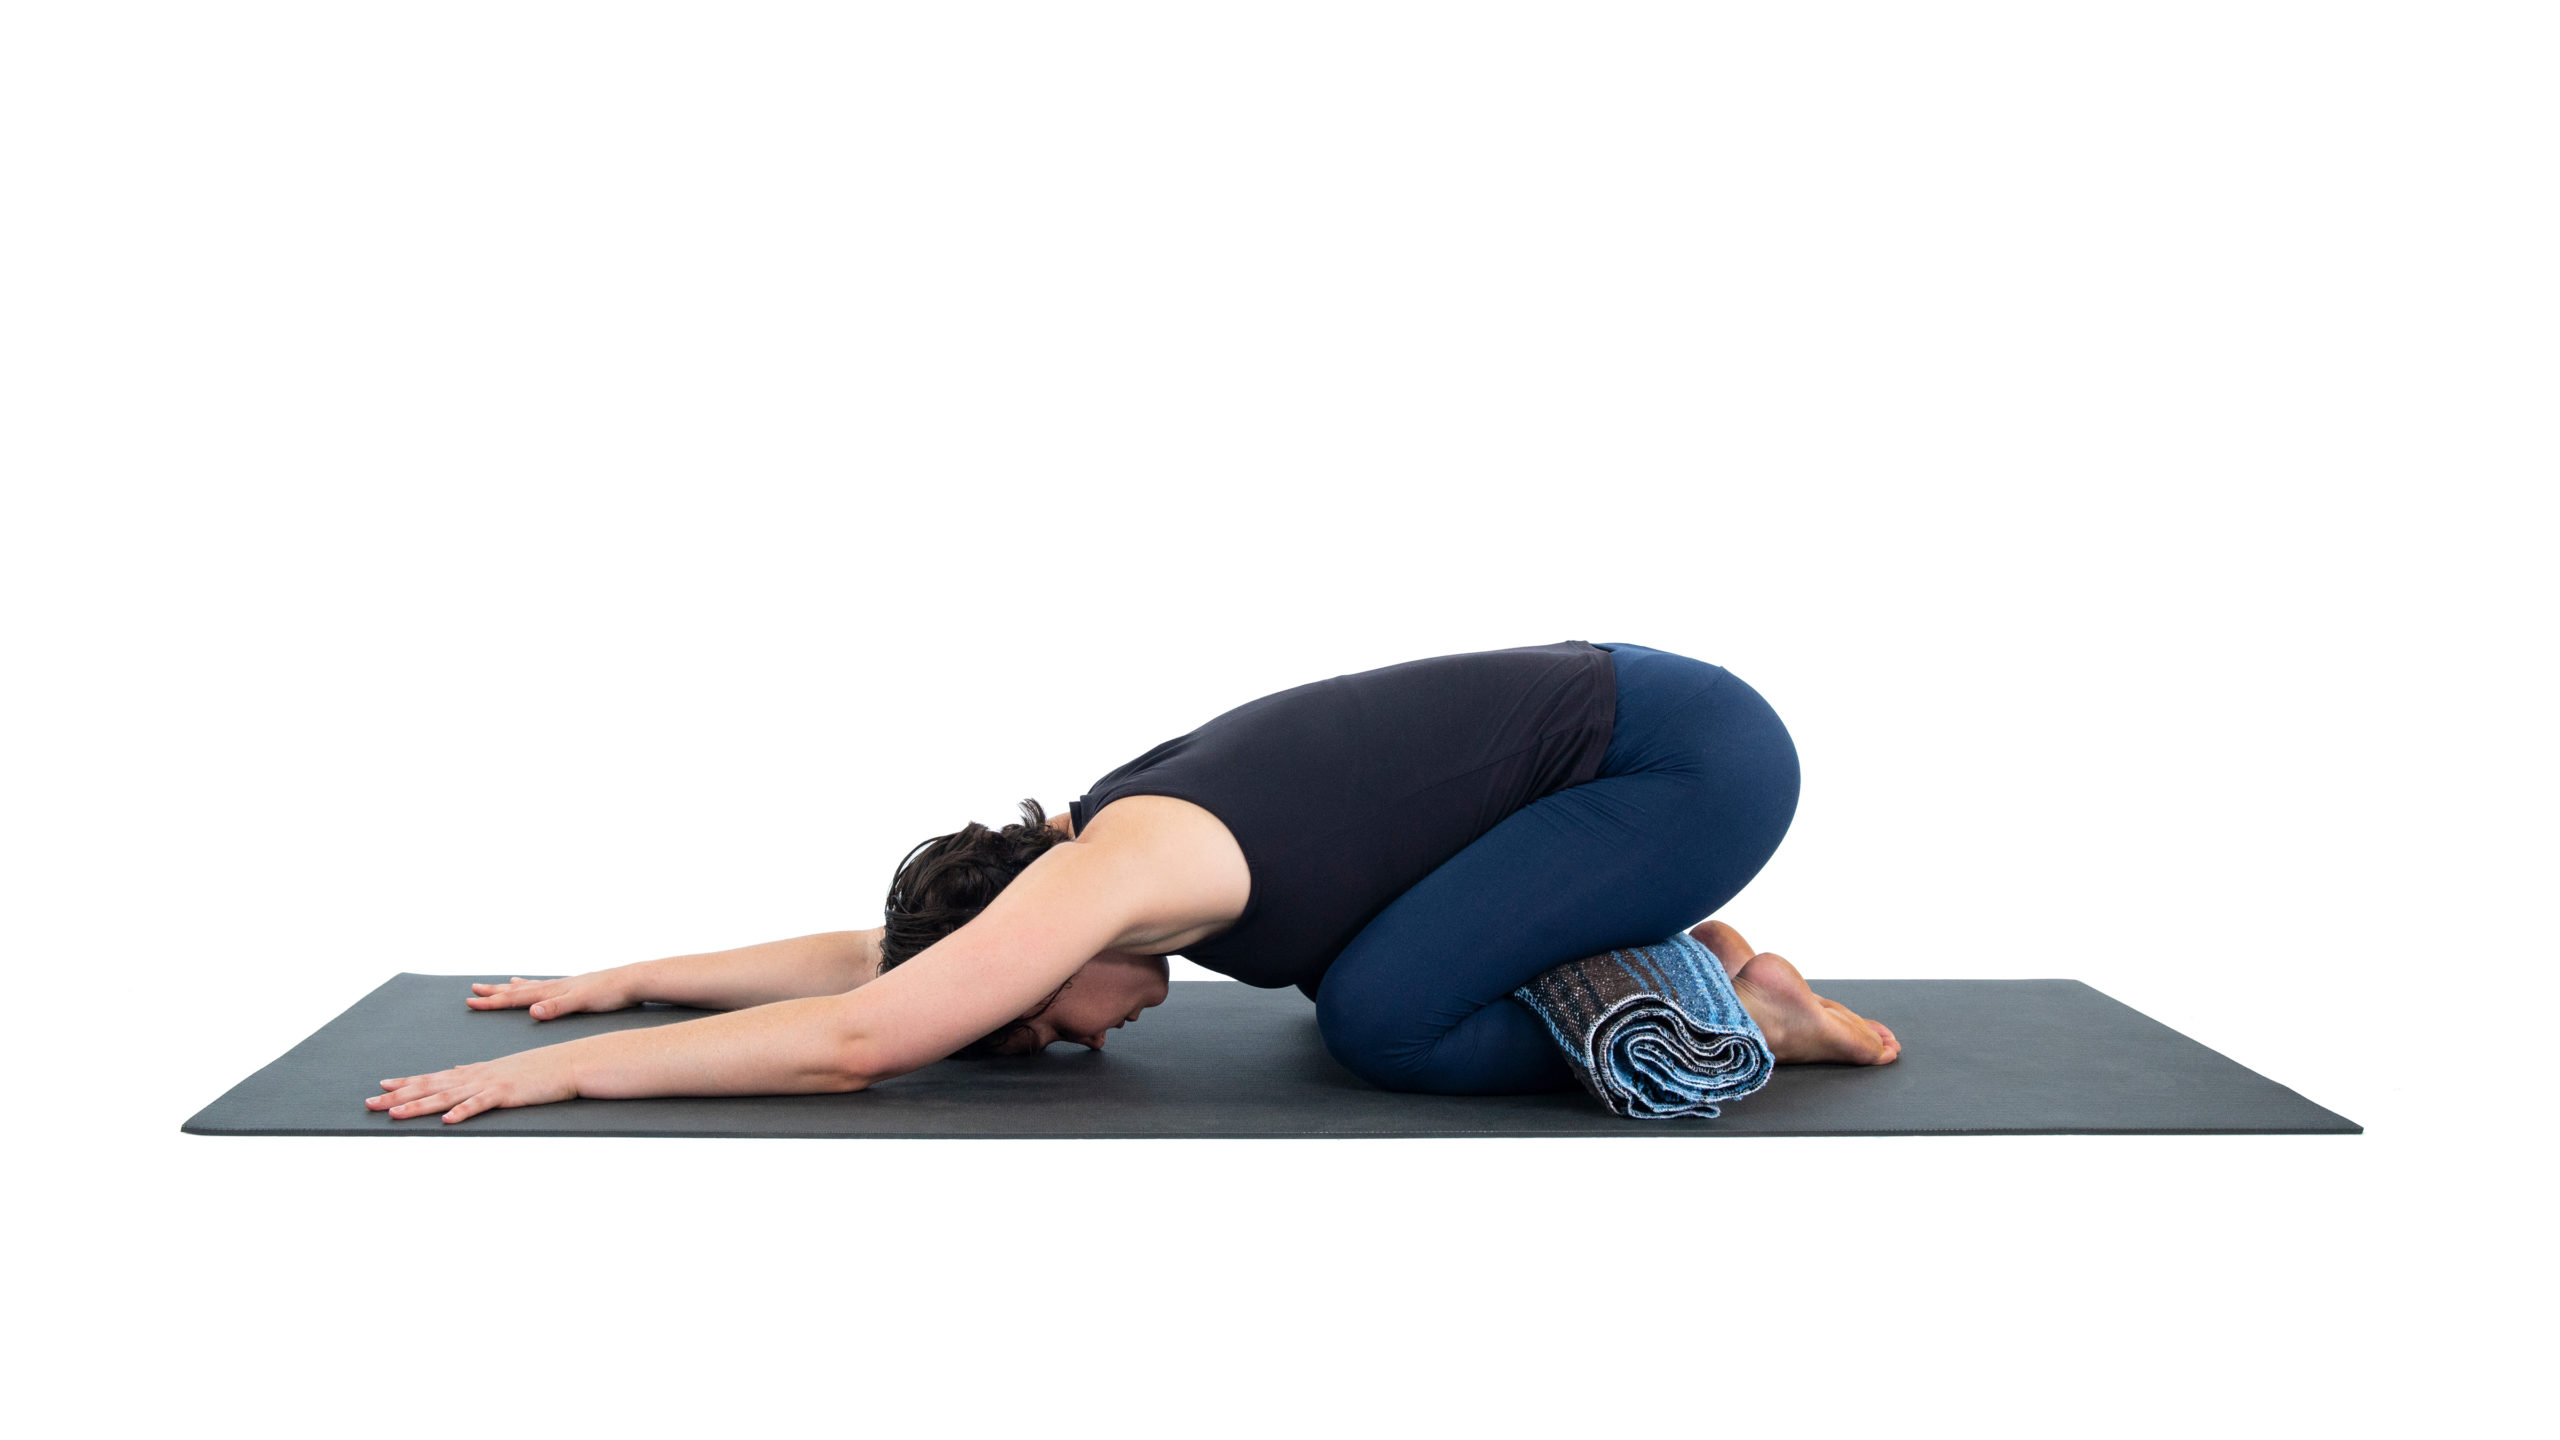 Child's Pose or Balasana, Child's Pose with shoudler stretch, asana variations, child's pose with props in a sequence flowing with change